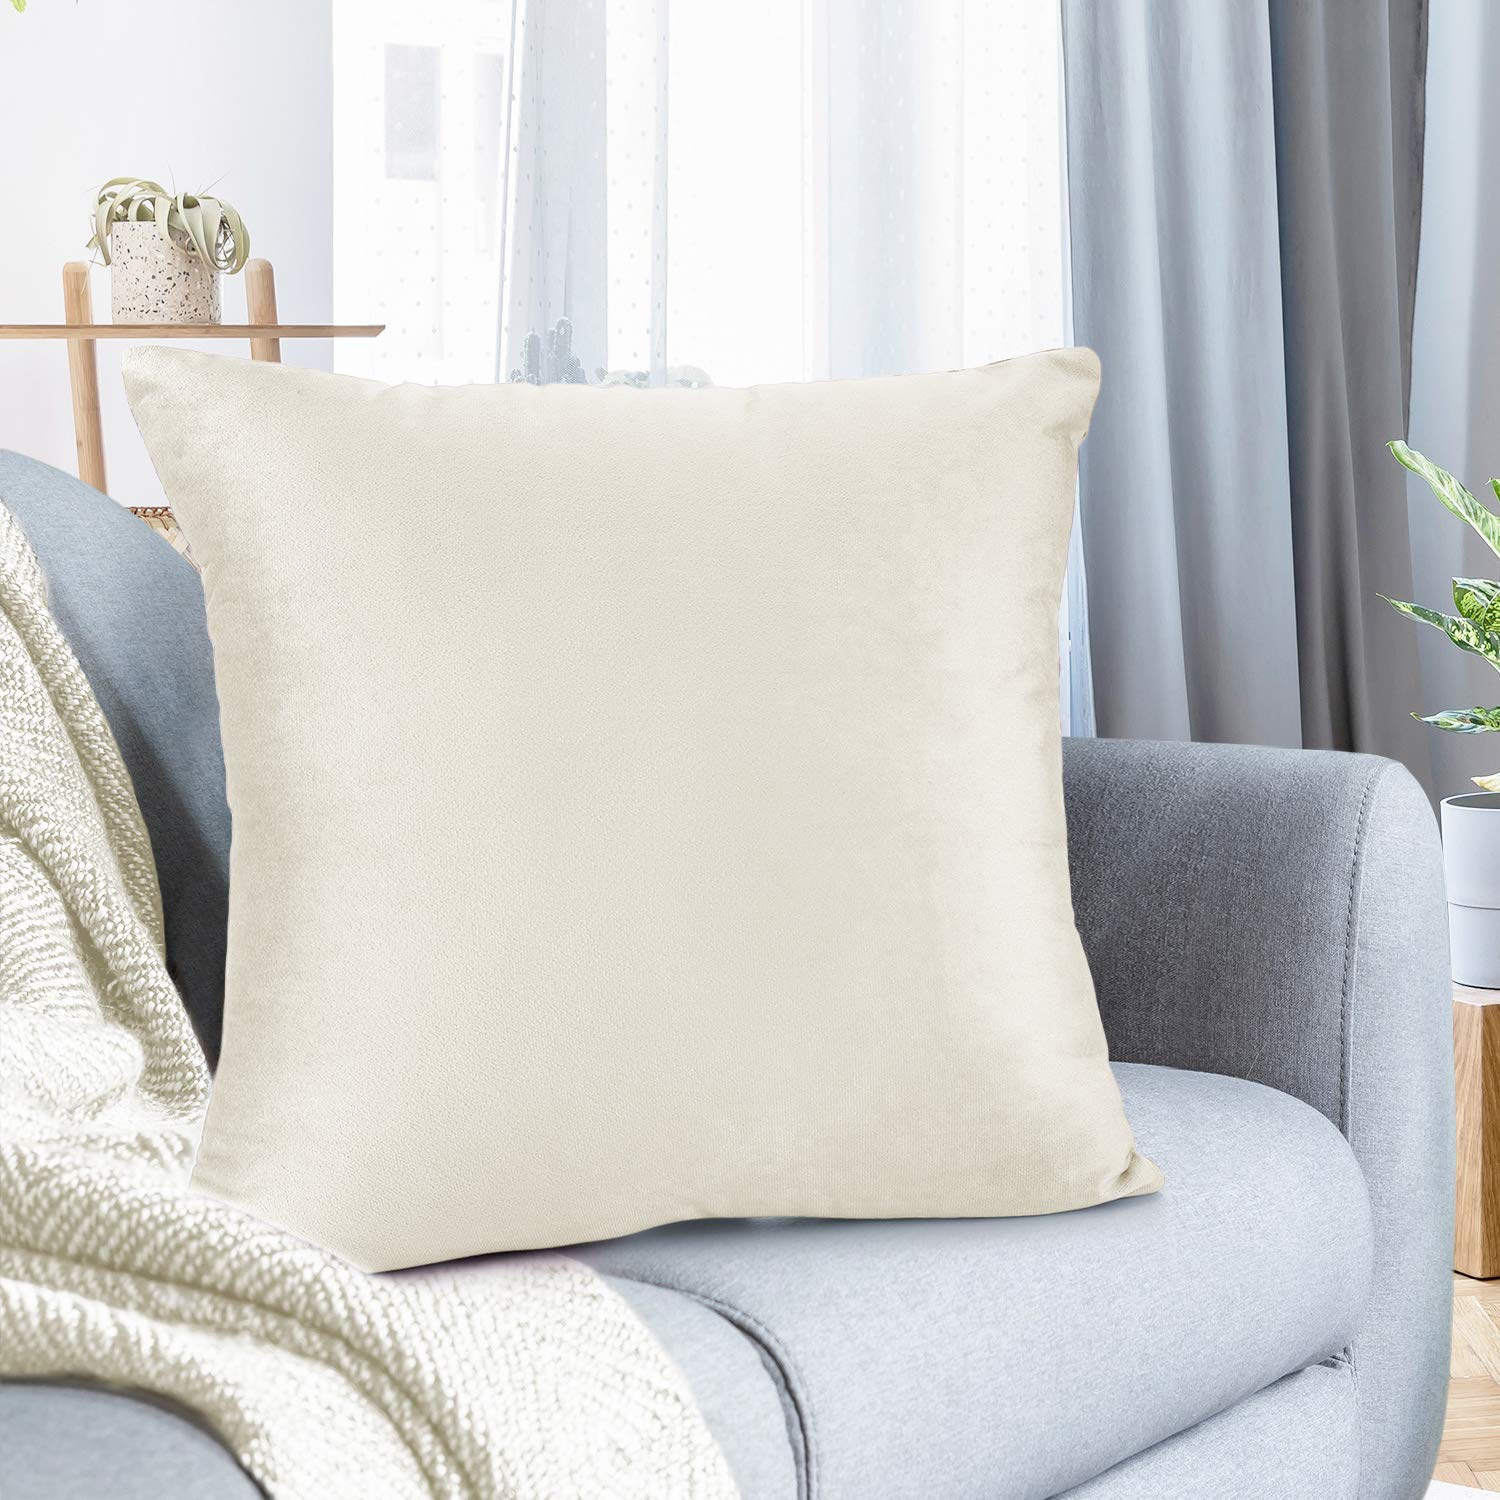 """Nestl Bedding Throw Pillow Cover 16"""" x 16"""" Soft Square Decorative Throw Pillow Covers Cozy Velvet Cushion Case for Sofa Couch Bedroom - Off White"""